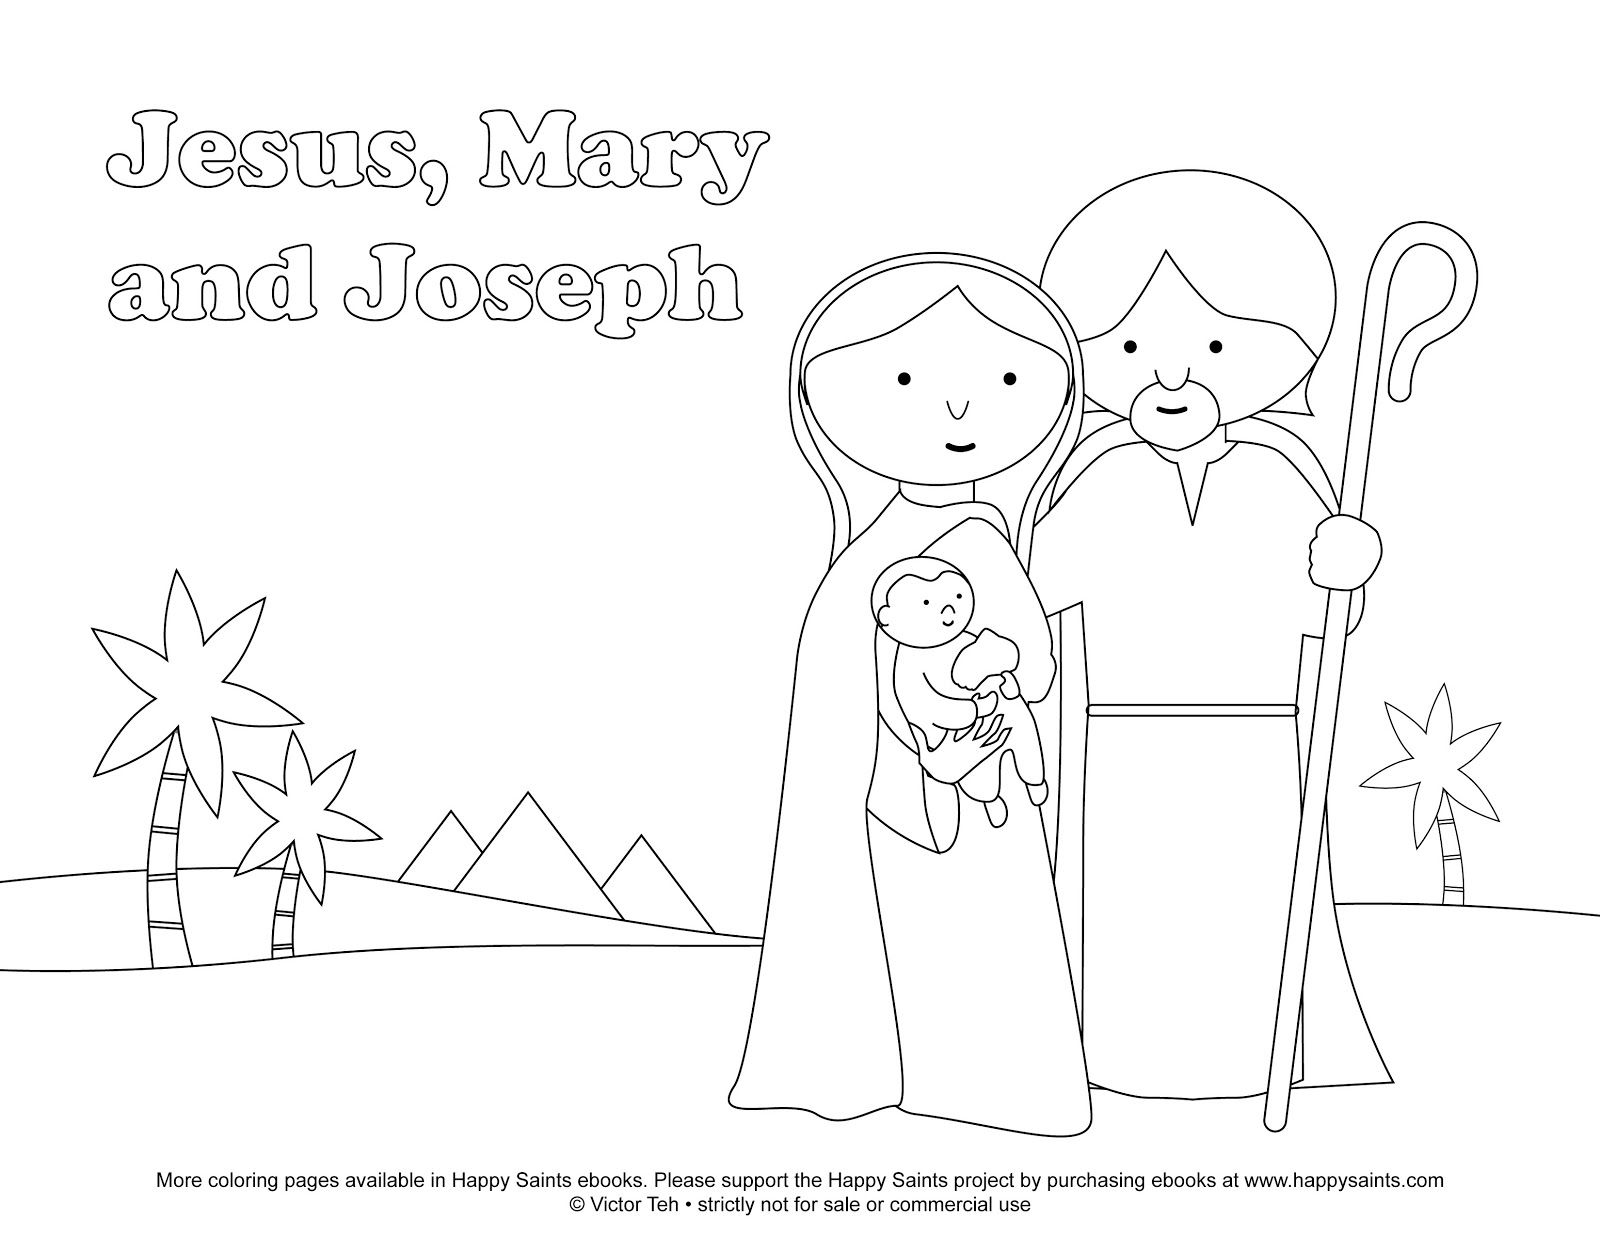 Happy Saints: Free Coloring Page of the Holy Family - Jesus, Mary ...